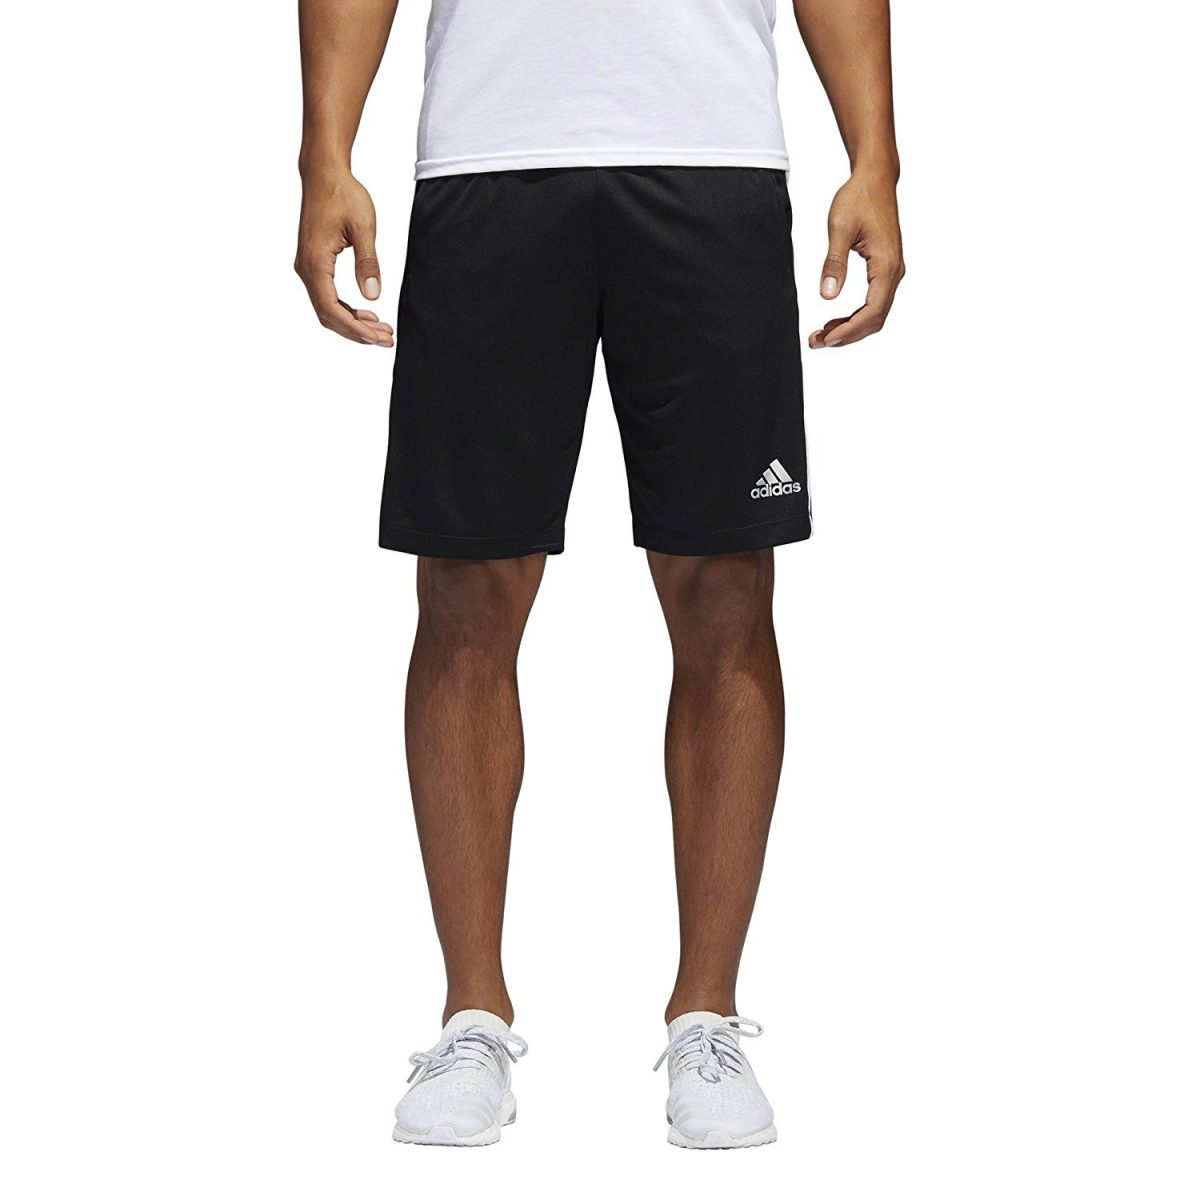 Quick Dry Sports Shorts For Men: Ideal For Everyday Workout!